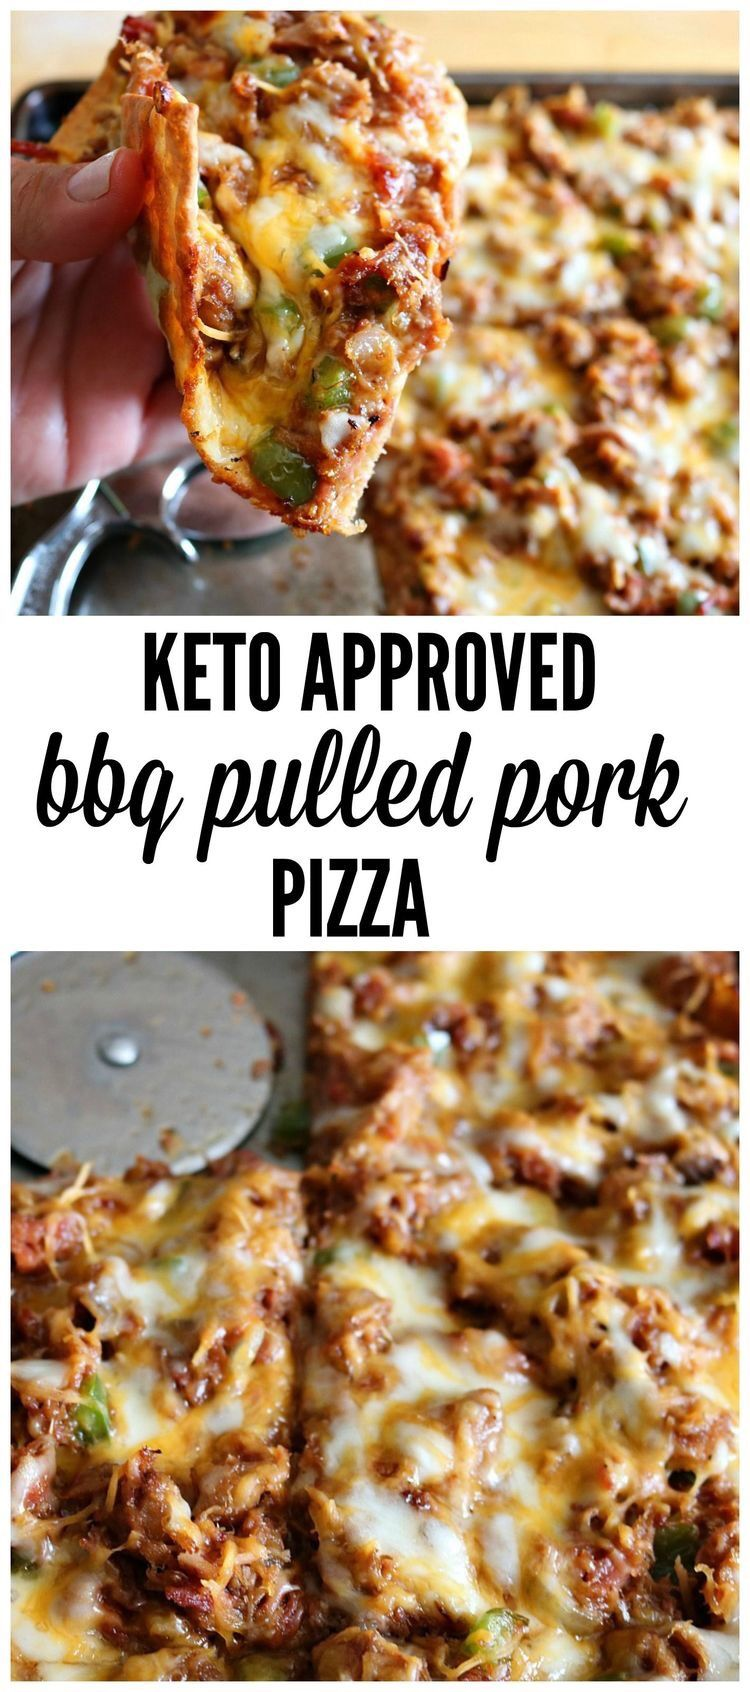 24 Best Low Carb Keto Pizza Recipes The Whole Family Will Love #lowcarbrecipes